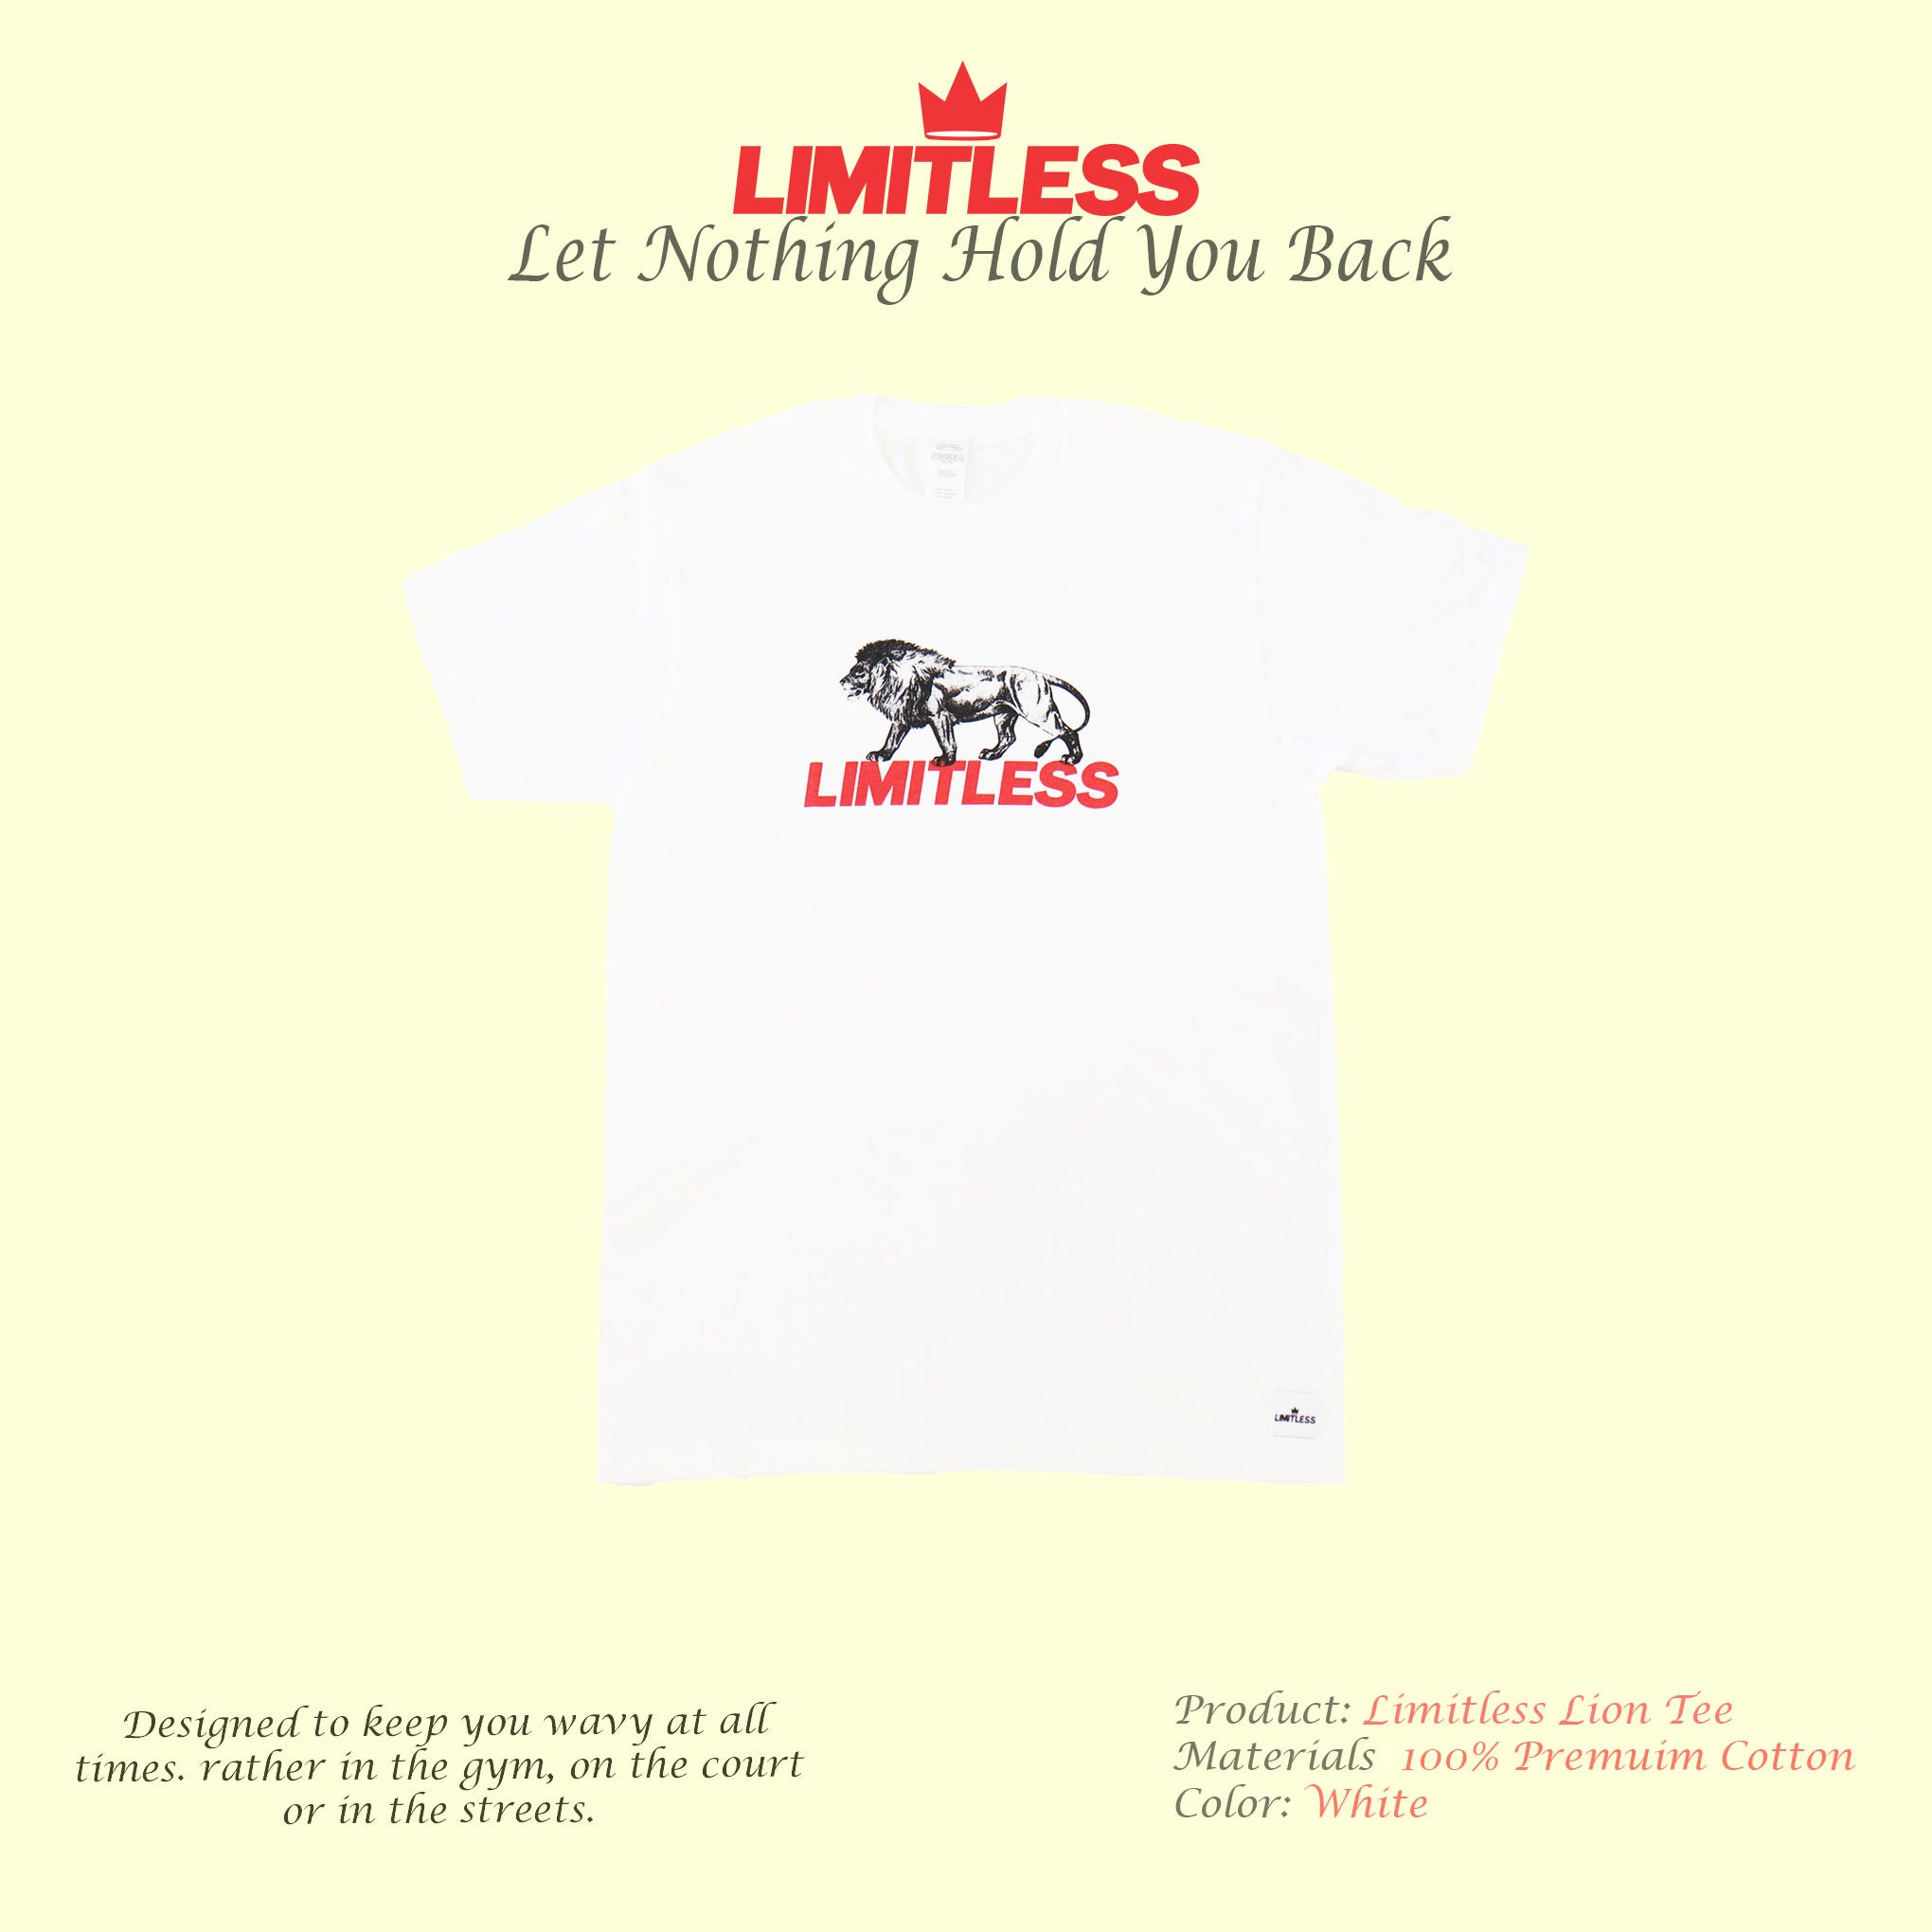 Lion with Red Limitless Logo T-shirt - Product Spolight